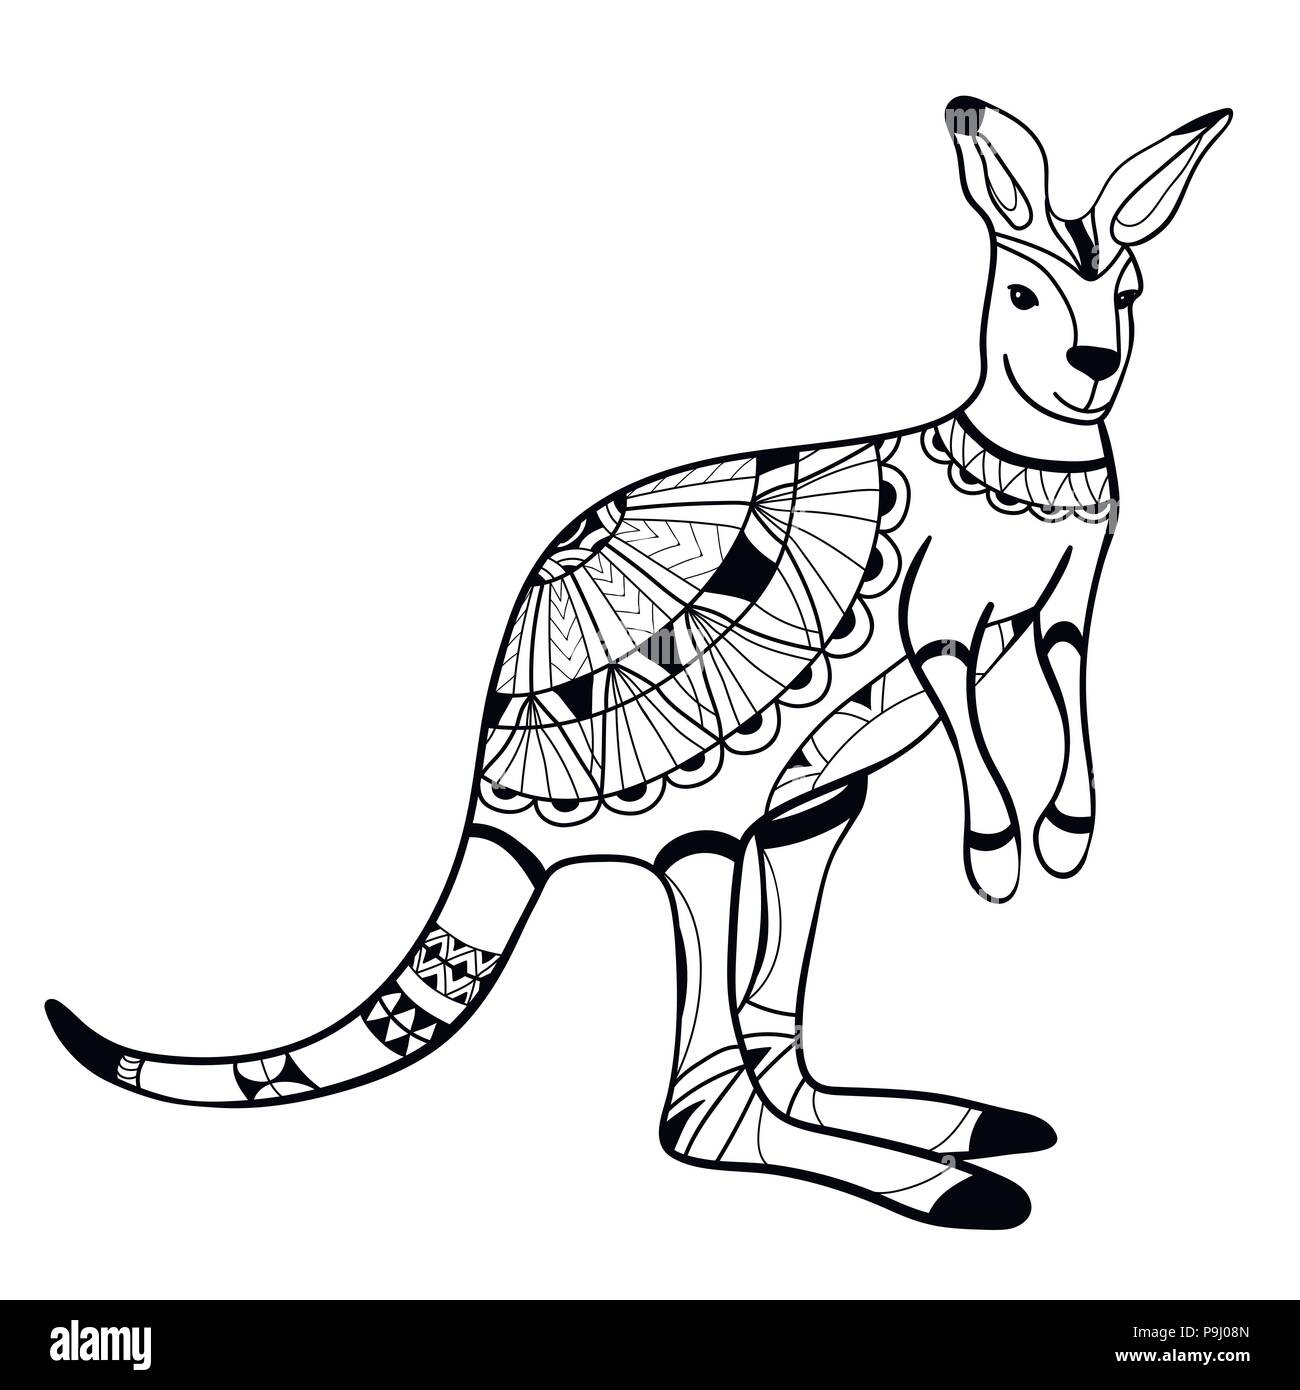 Coloring Book Coloring Page Animal Kangaroo Pattern Vector